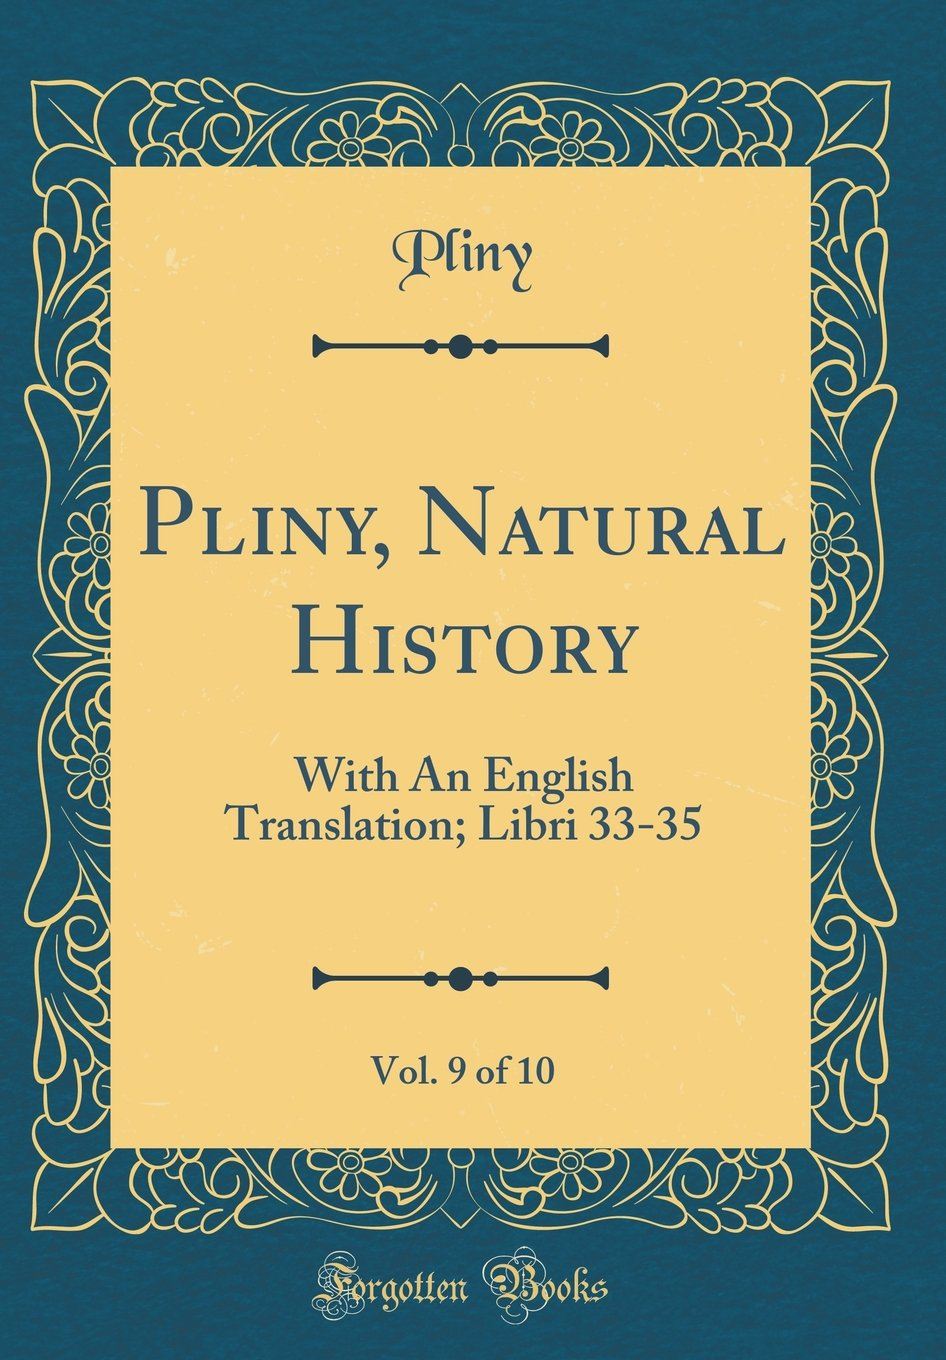 Pliny, Natural History, Vol. 9 of 10: With An English Translation; Libri 33-35 (Classic Reprint) (Latin Edition) ebook